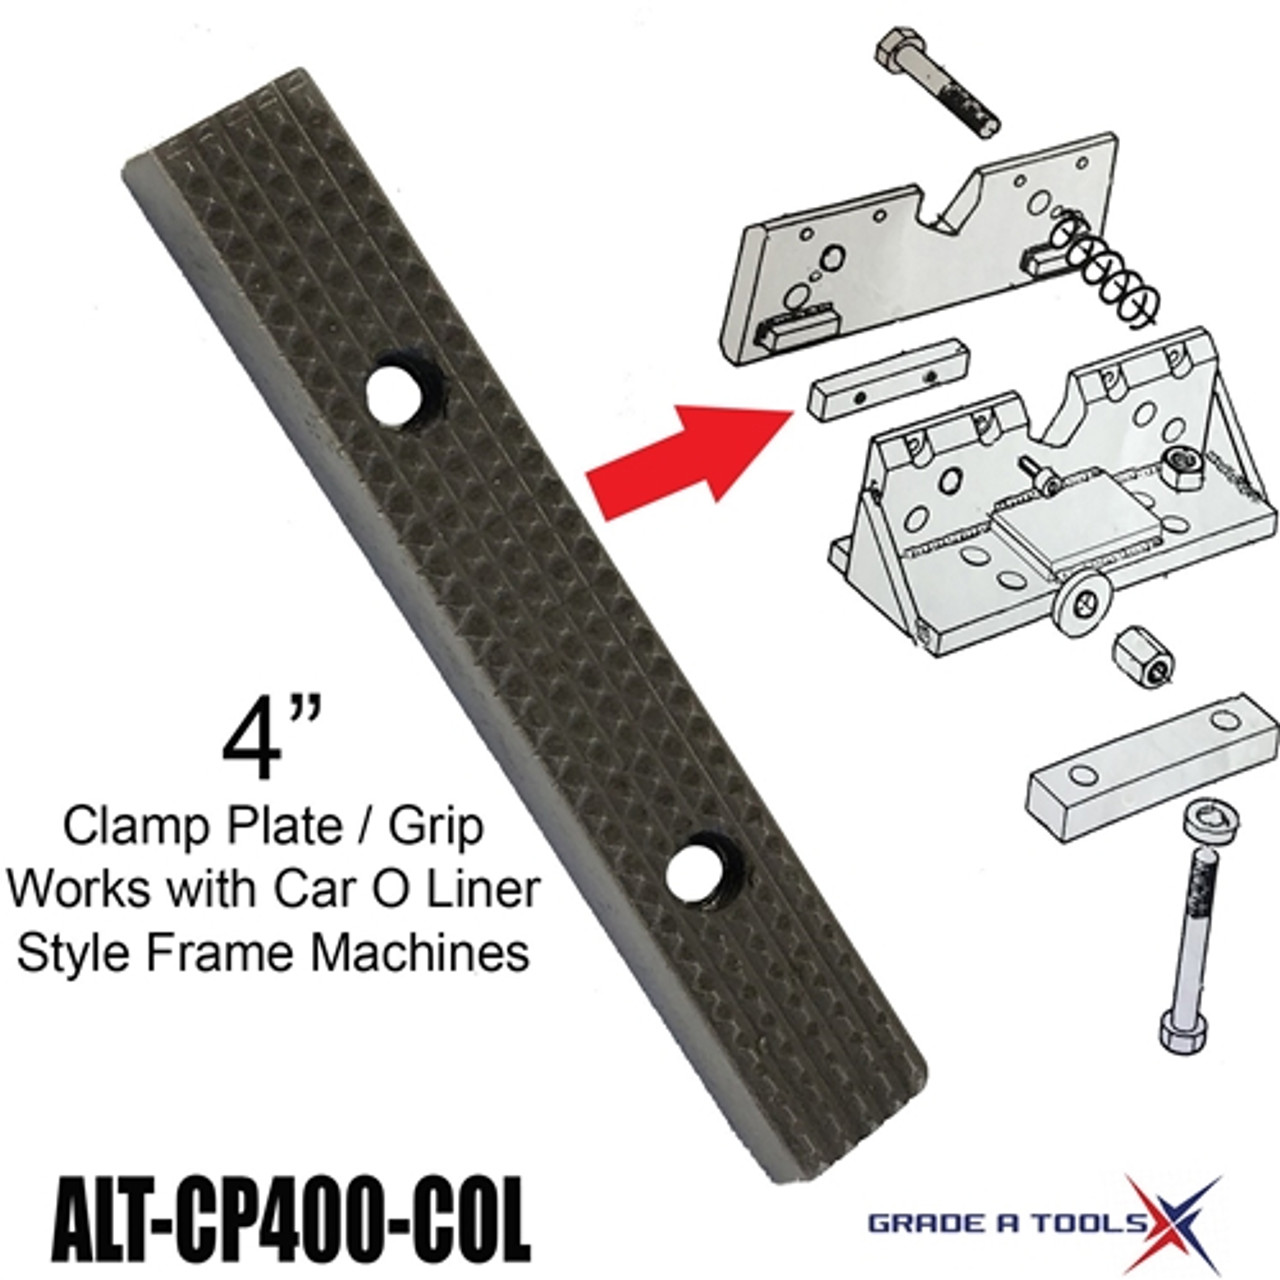 "Clamp Plate | Grip 4"" - Car O Liner Frame Anchoring Clamps"